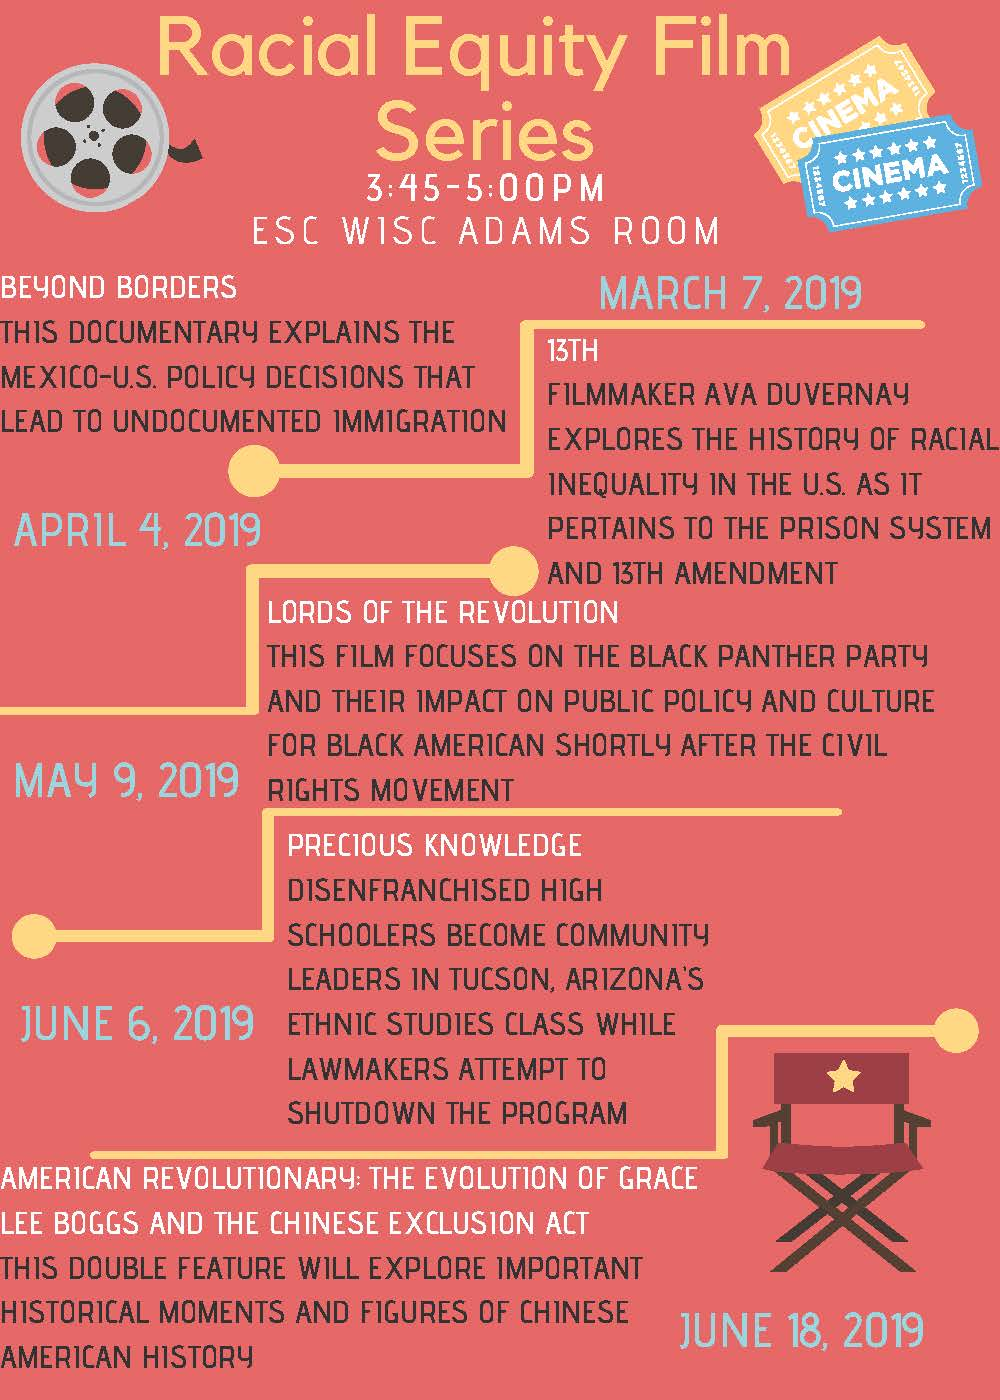 Racial Equity Film Series @ Sammamish High School Library | Bellevue | Washington | United States